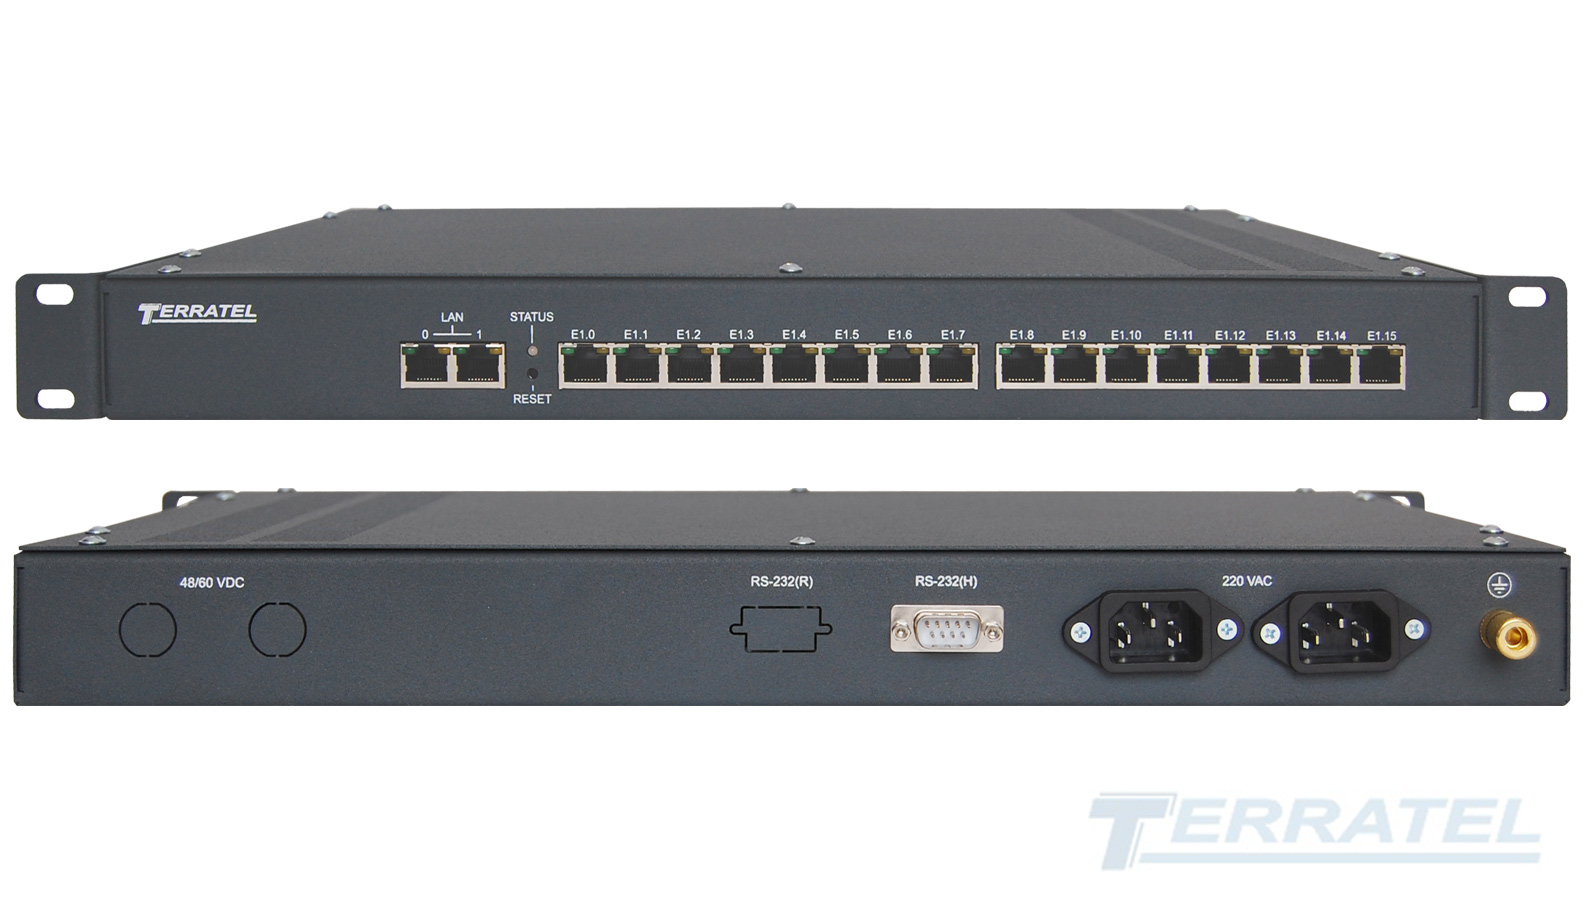 Photo Terratel VoIP Media Gateway for integration to IP, IMS, NGN, 16E1